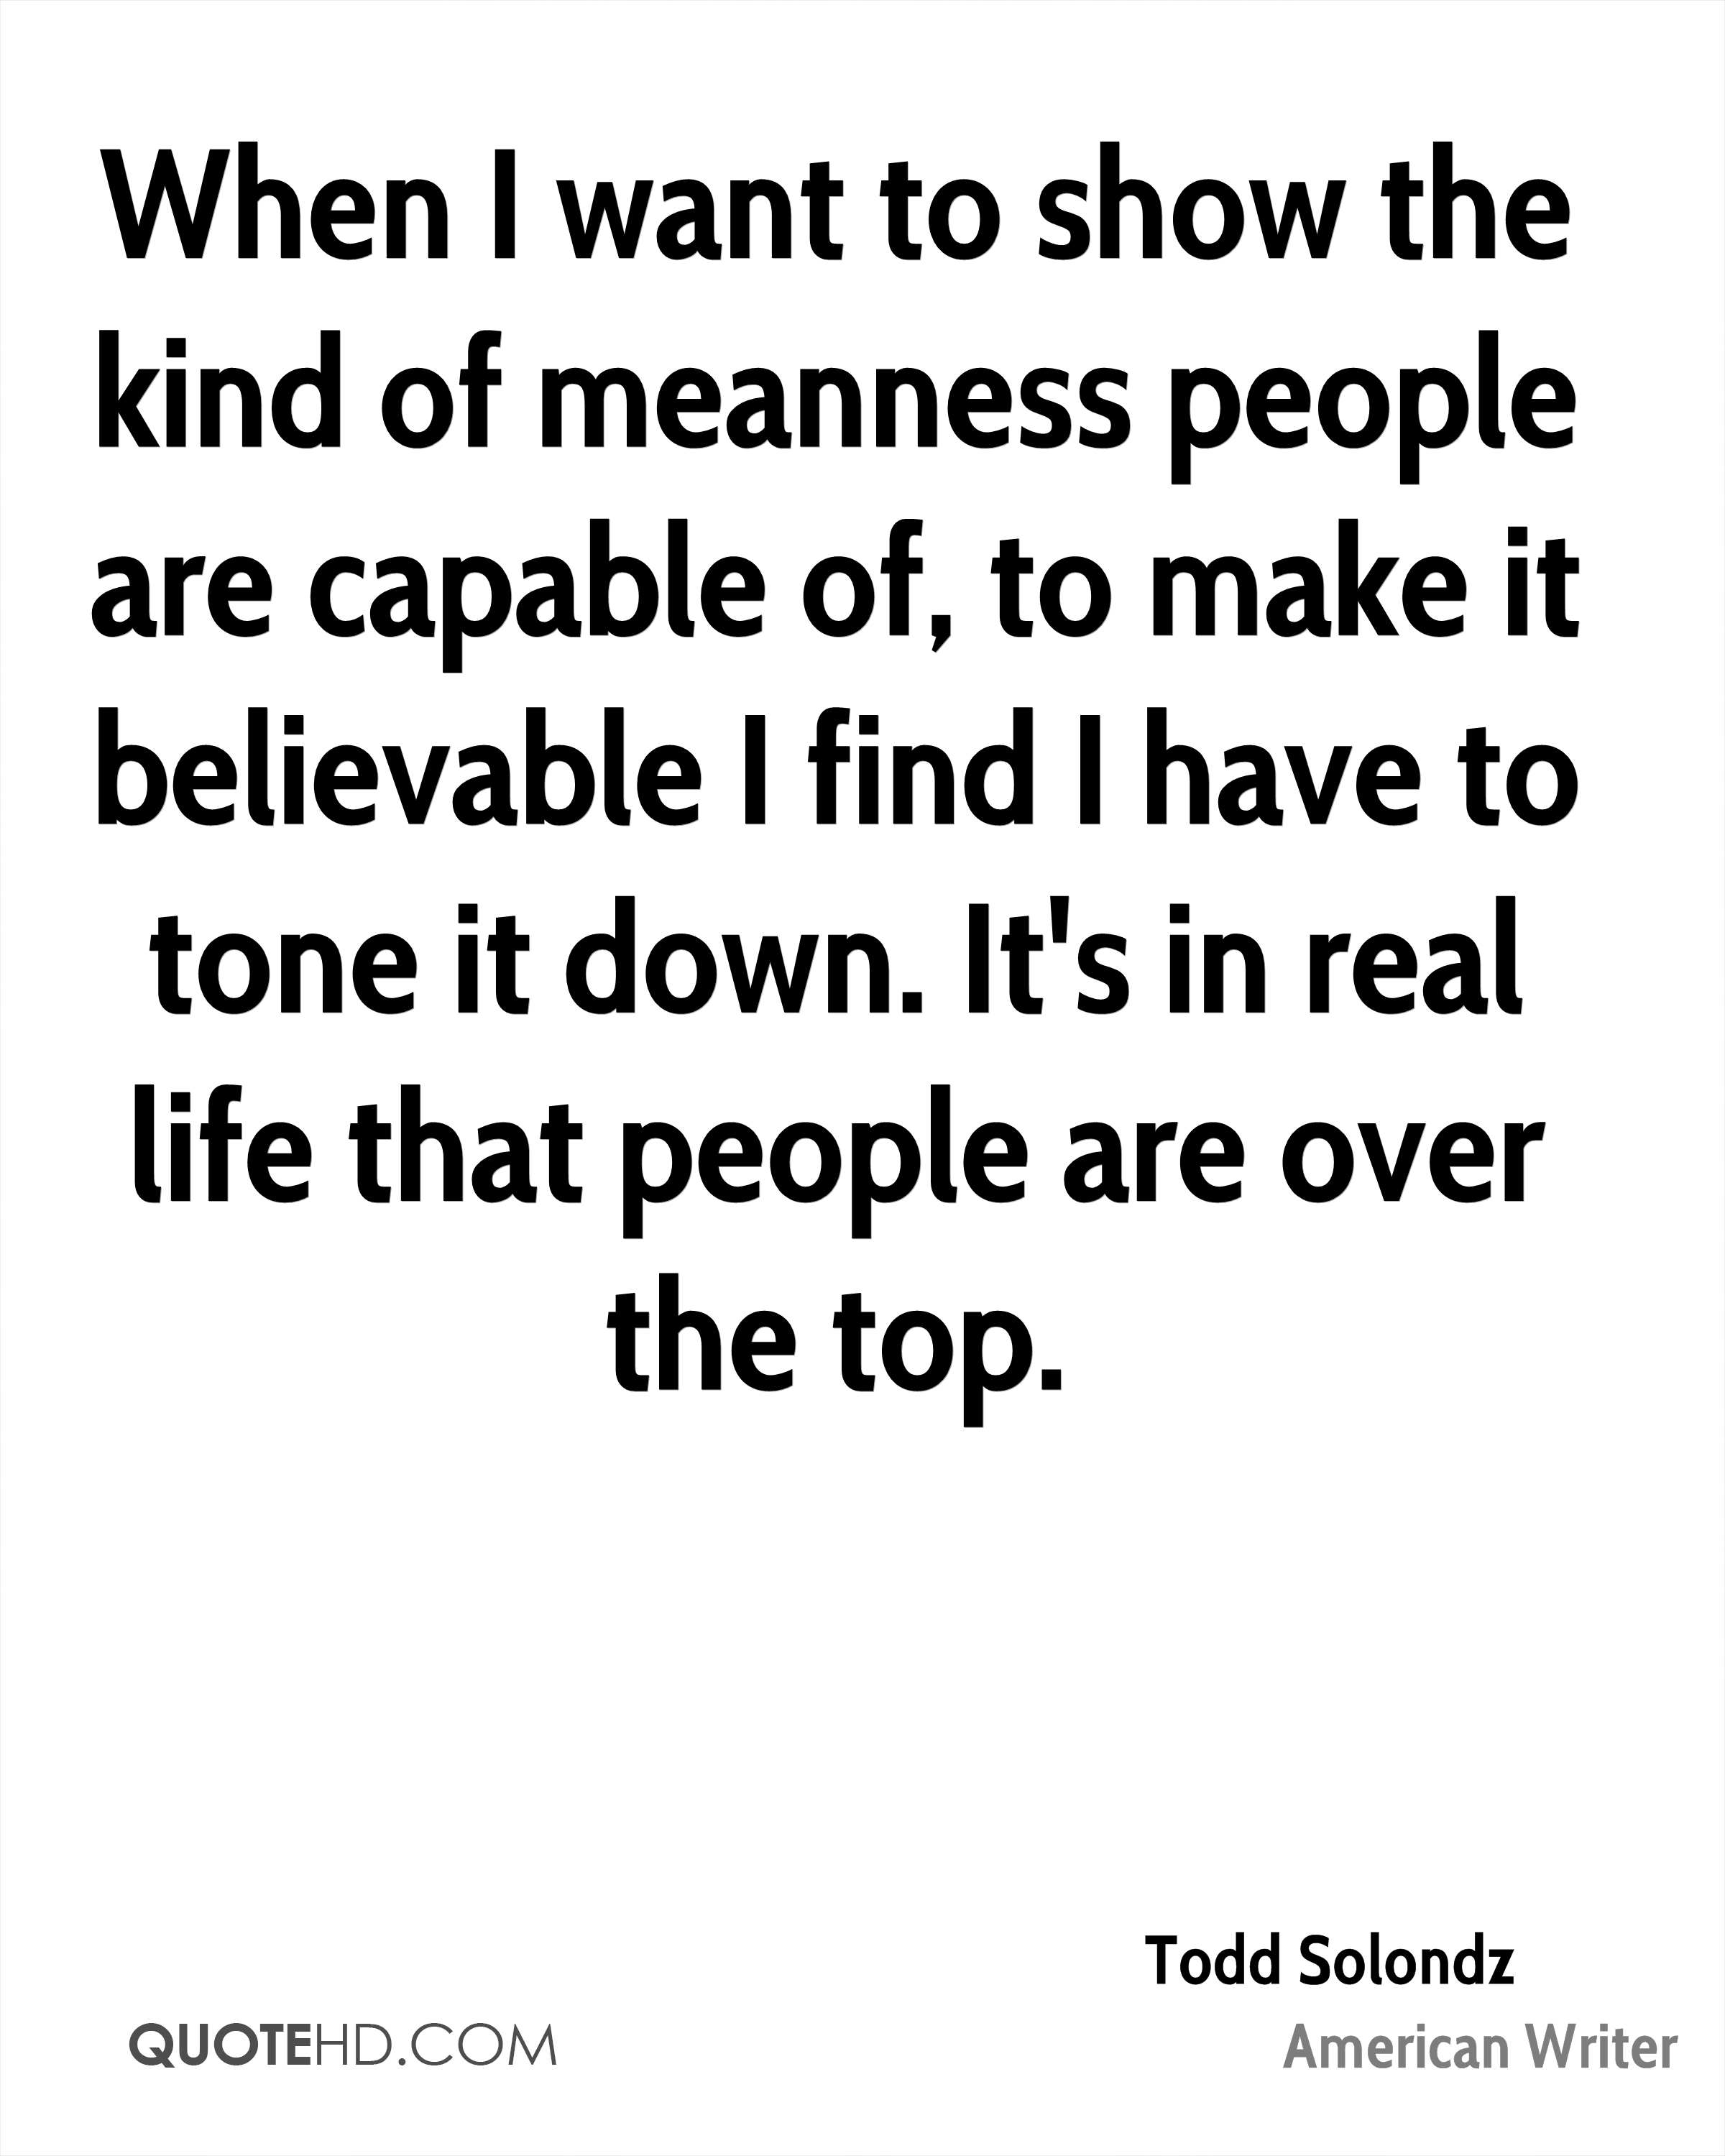 When I want to show the kind of meanness people are capable of, to make it believable I find I have to tone it down. It's in real life that people are over the top.